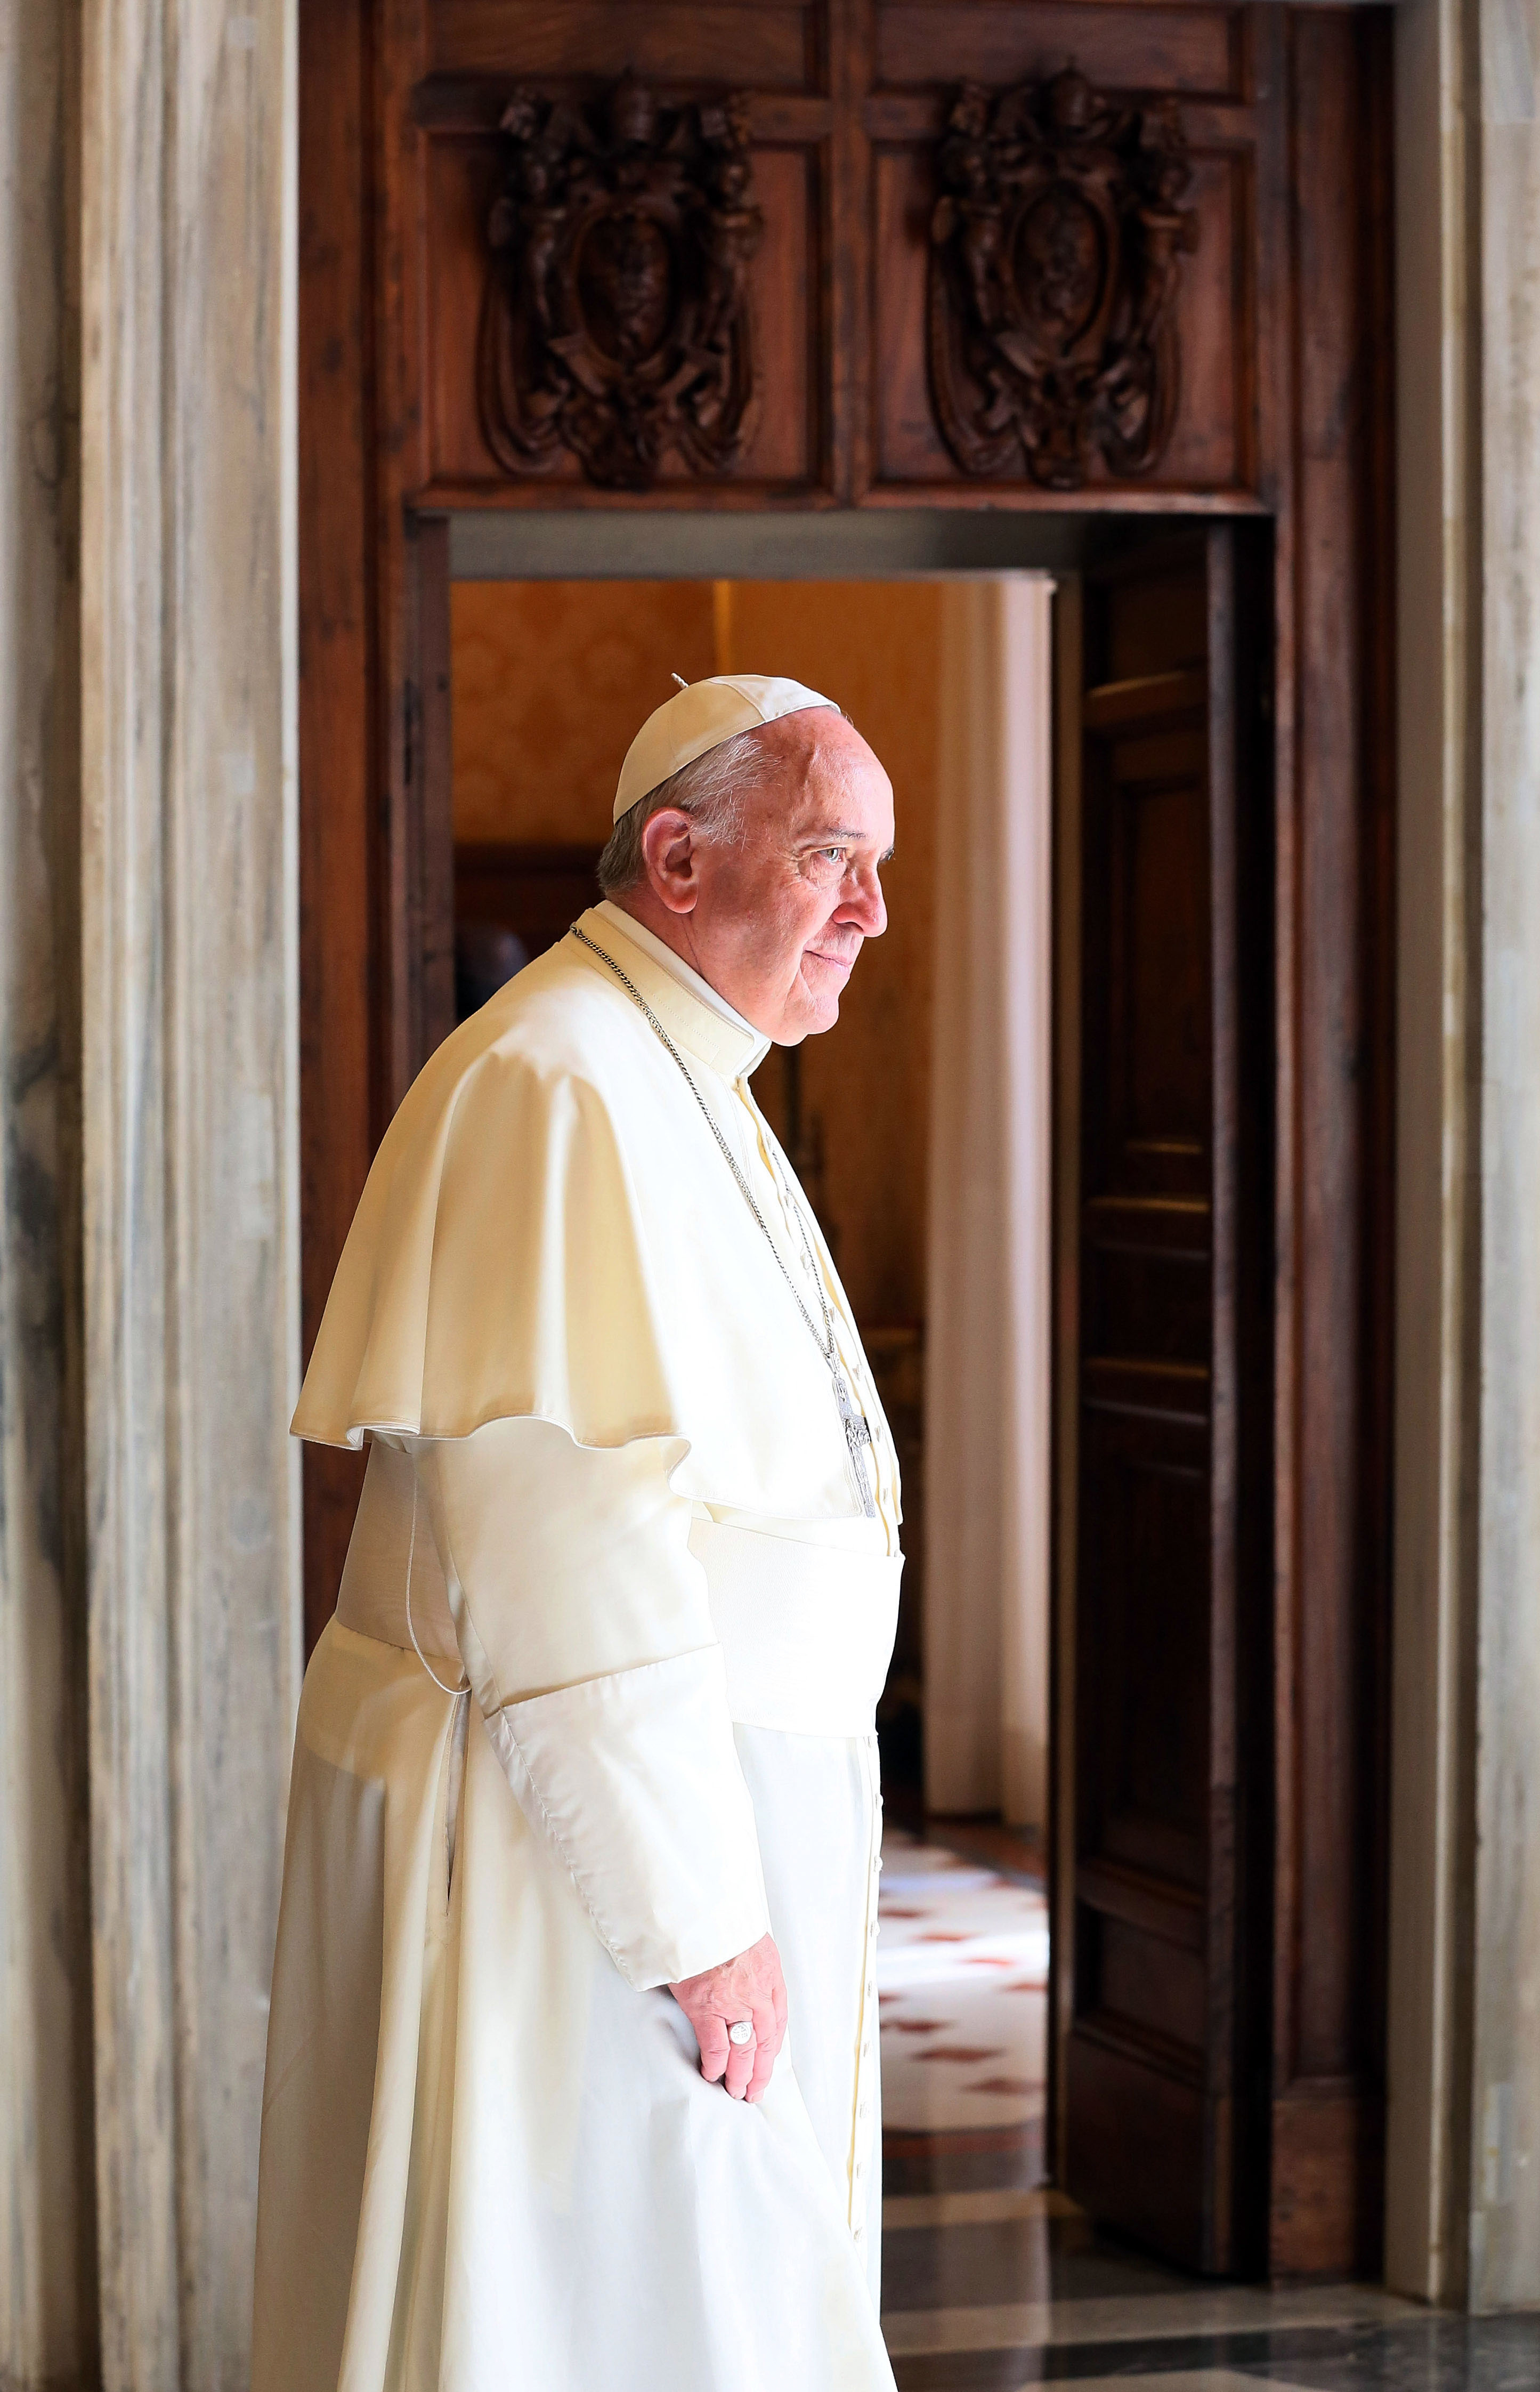 Pope Francis attends an audience with  President of Panama Juan Carlos Varela at his private library of the Apostolic Palace on Septy. 5, 2014 in Vatican City.